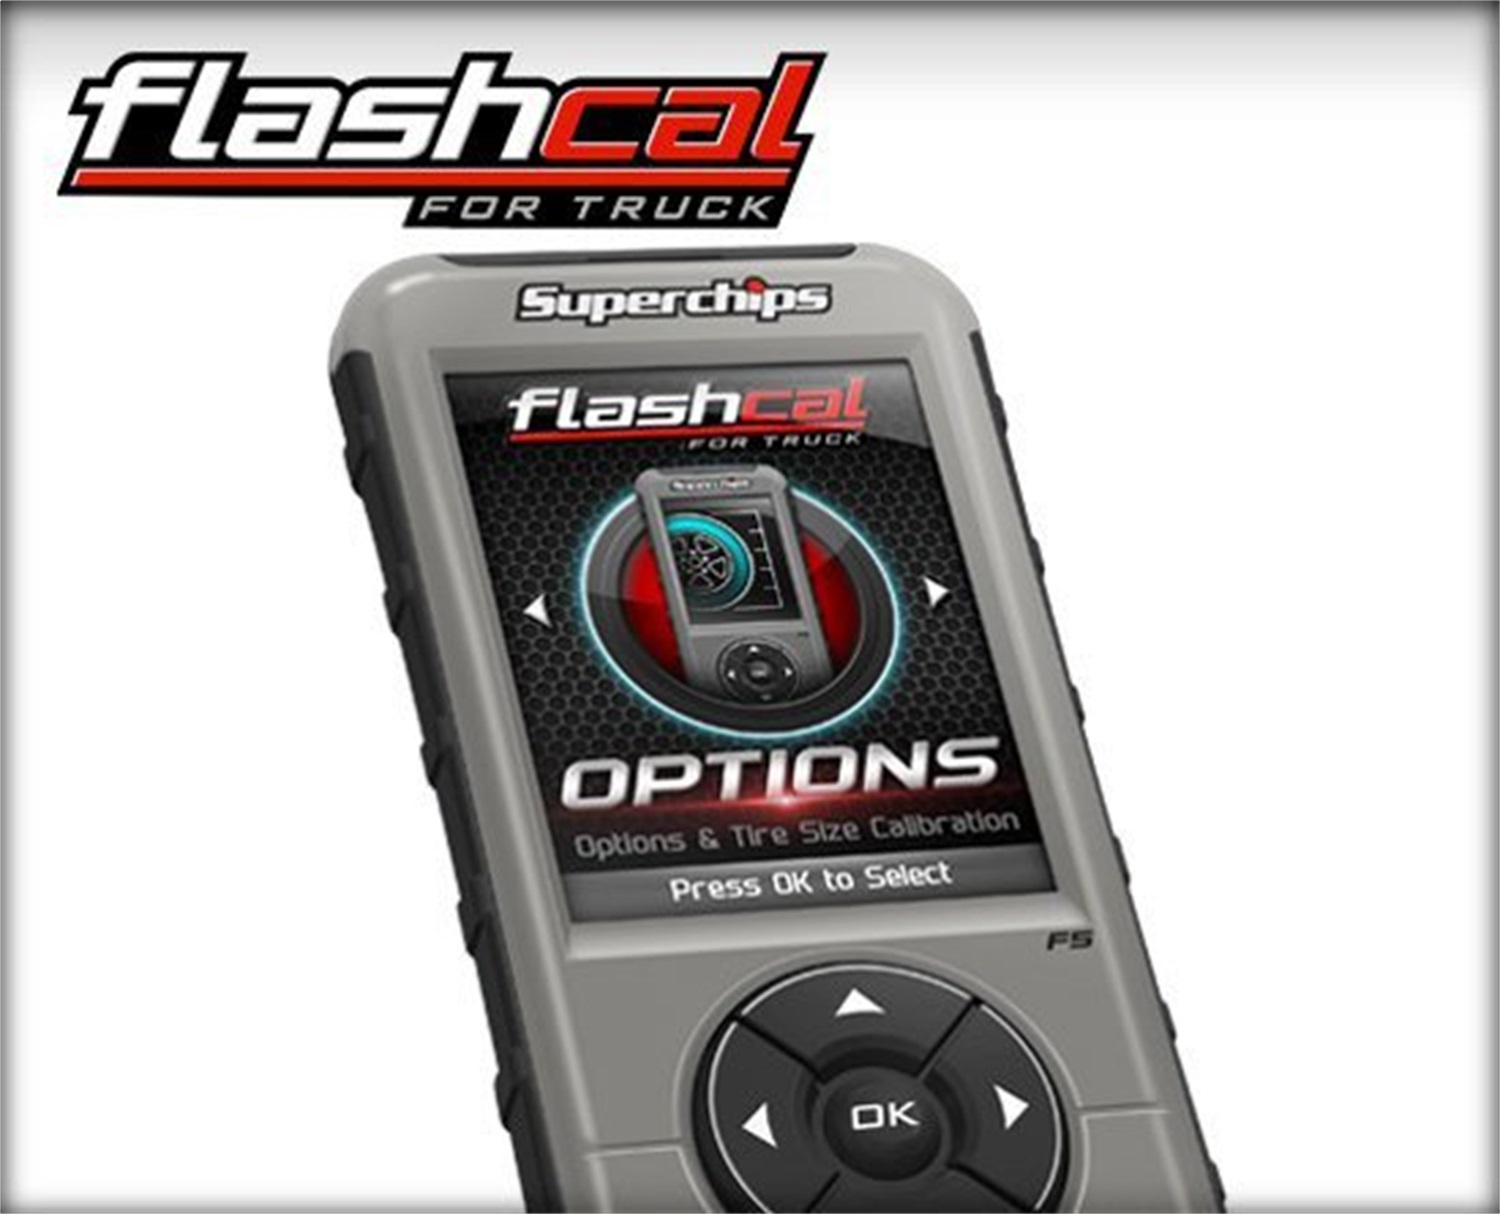 Flashcal F5 Programmer, Handheld Tuner